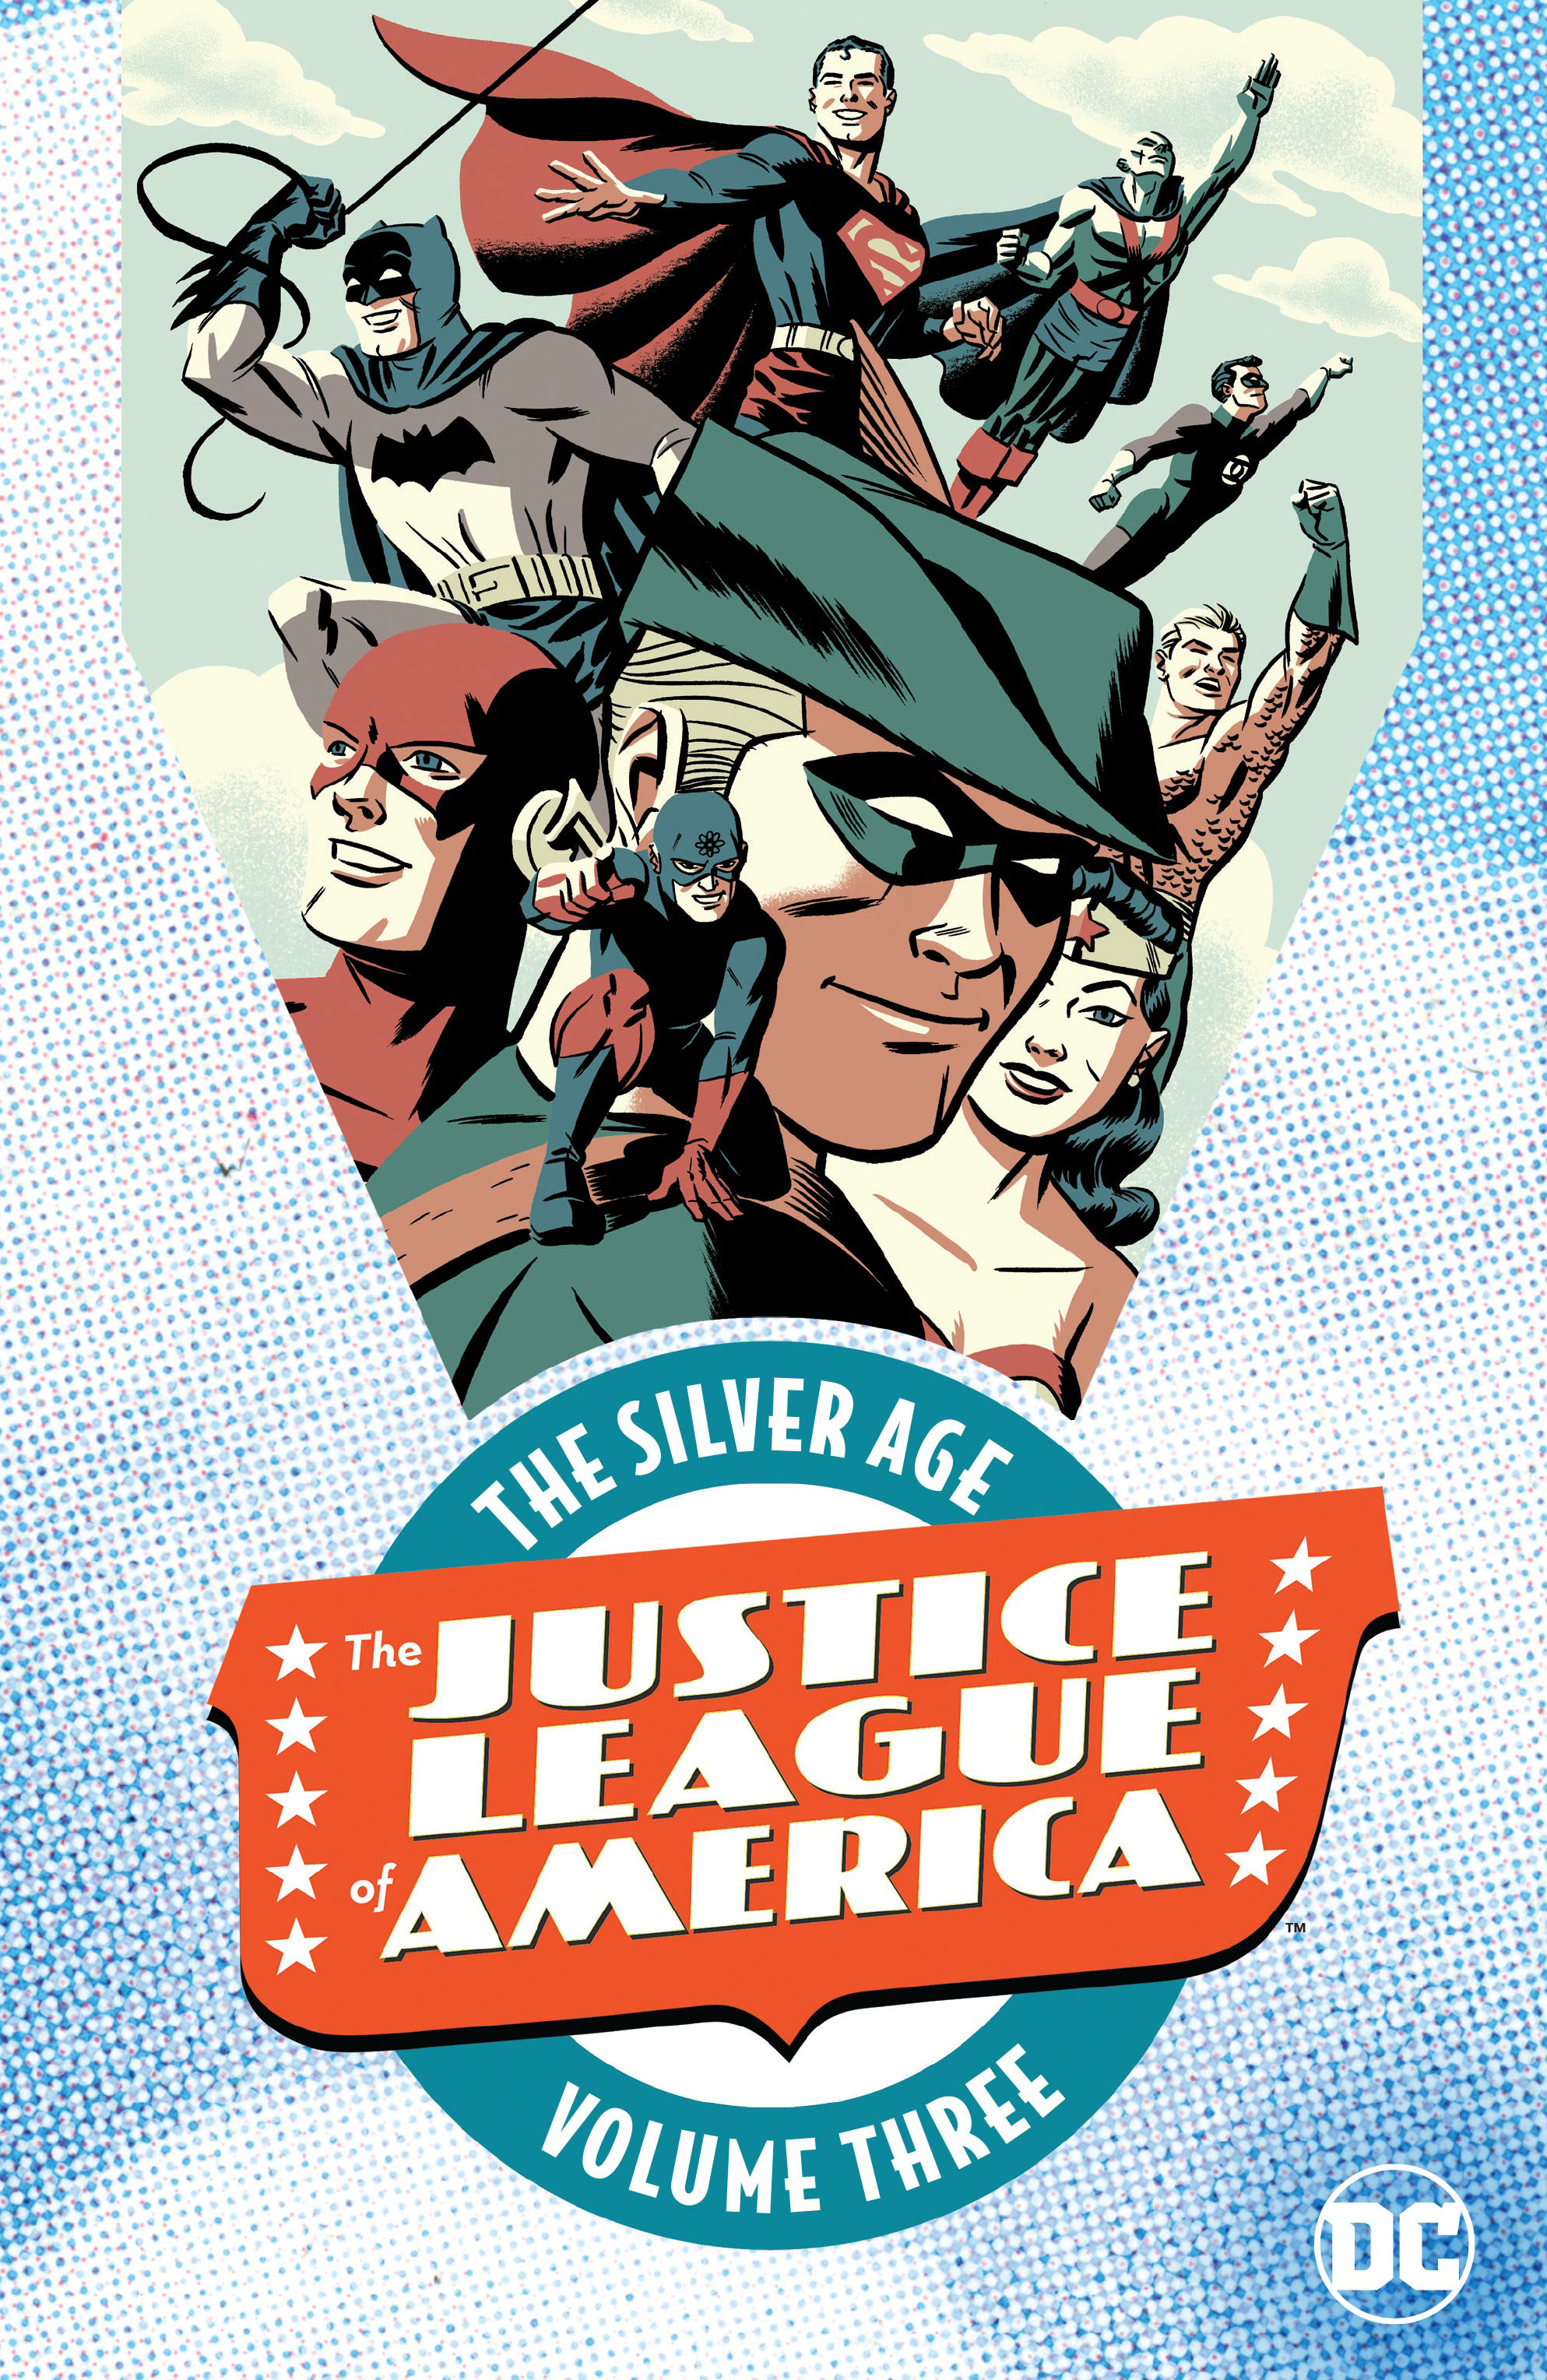 Justice League of America: The Silver Age Vol. 3 ddr4 4x8gb corsair 2666mhz cl16 1 2 cmk32gx4m4a2666c16